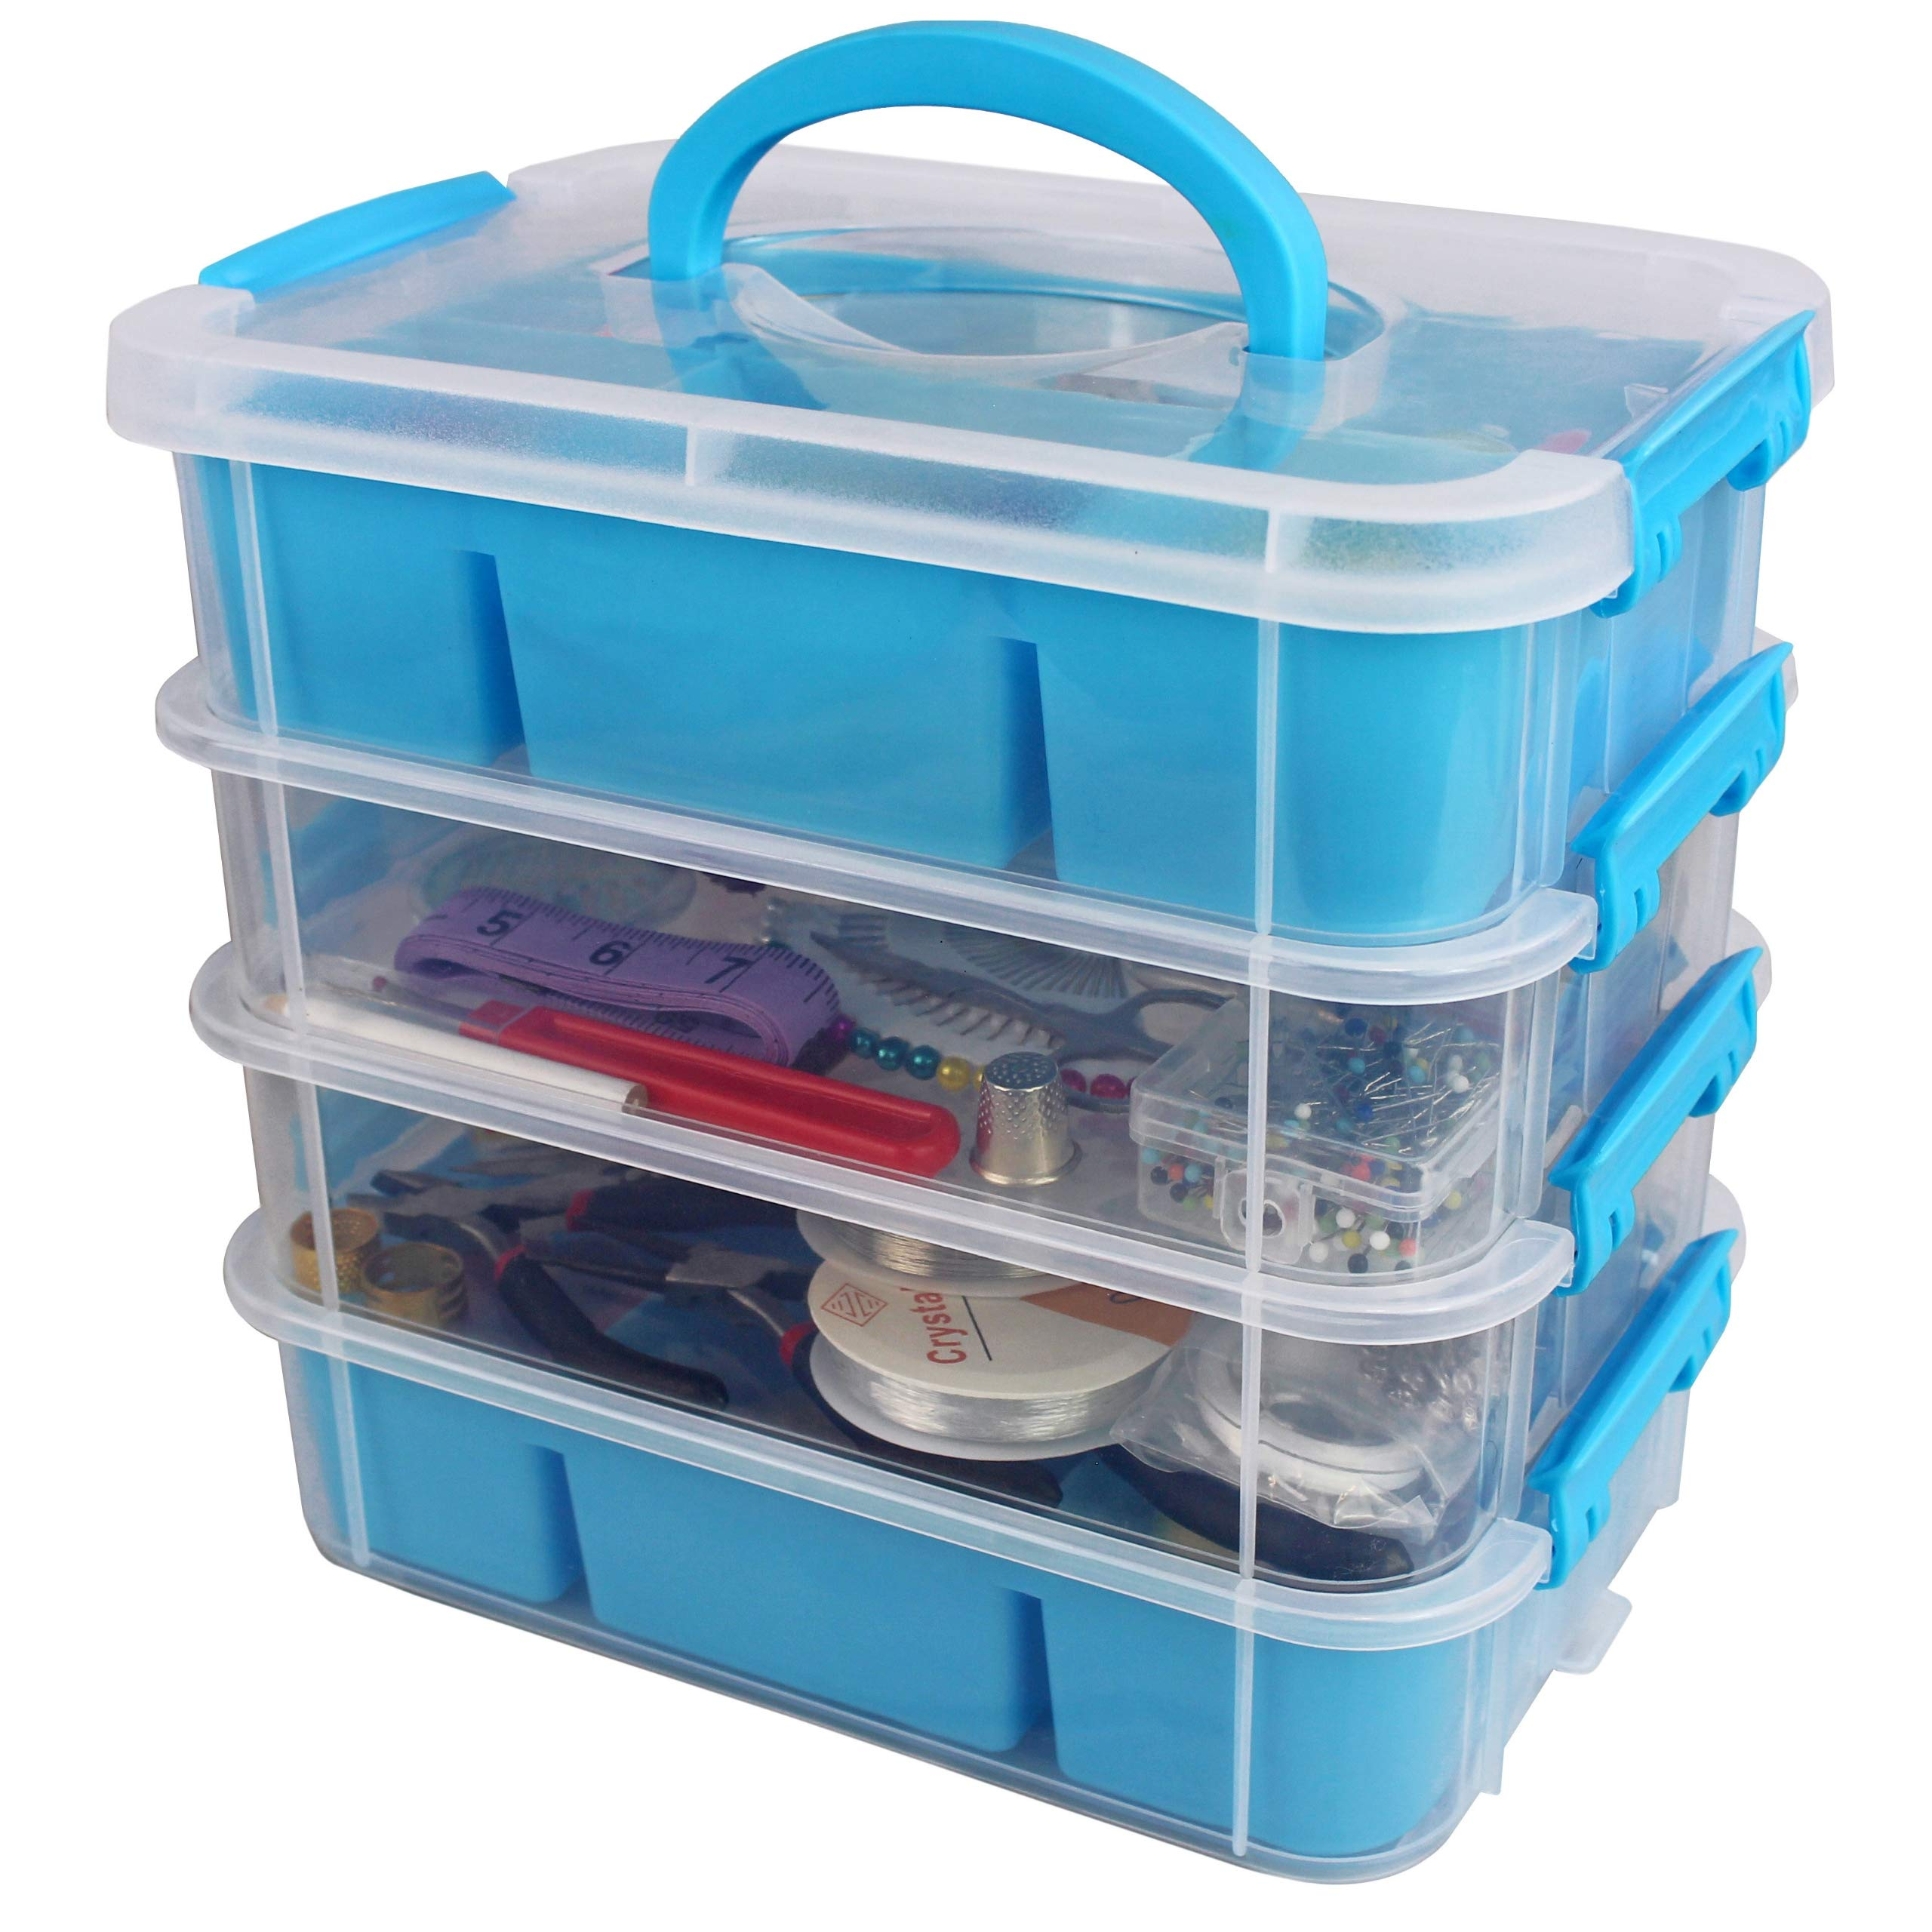 Stackable Plastic Craft Storage Containers by Bins & Things | Plastic Storage Organizer Bin with 2 Trays | Bins for Arts Crafts Supplies | Jewelry Making Storage Box | Portable Sewing Box Organizer by Bins & Things